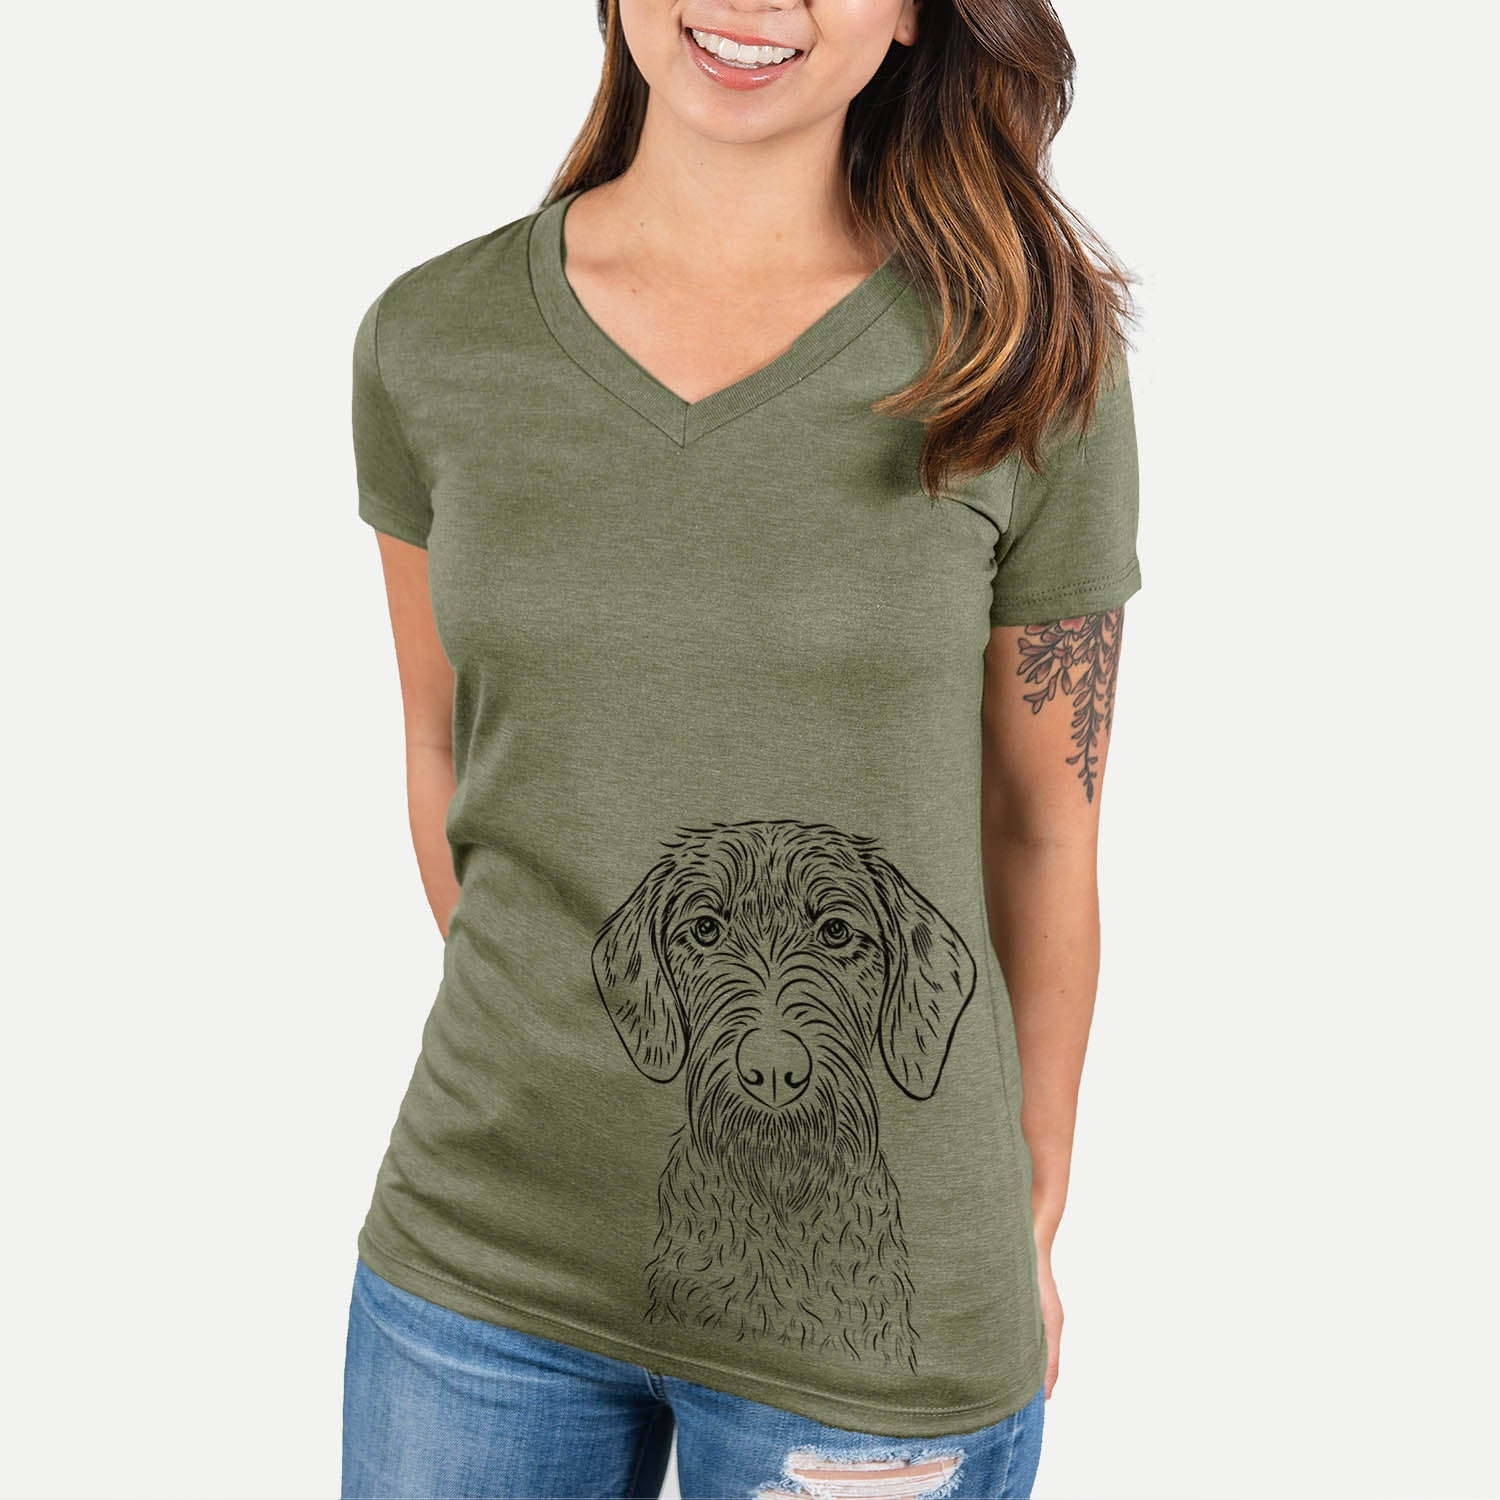 Gus the German Wirehaired Pointer - Women's Modern Fit V-neck Shirt